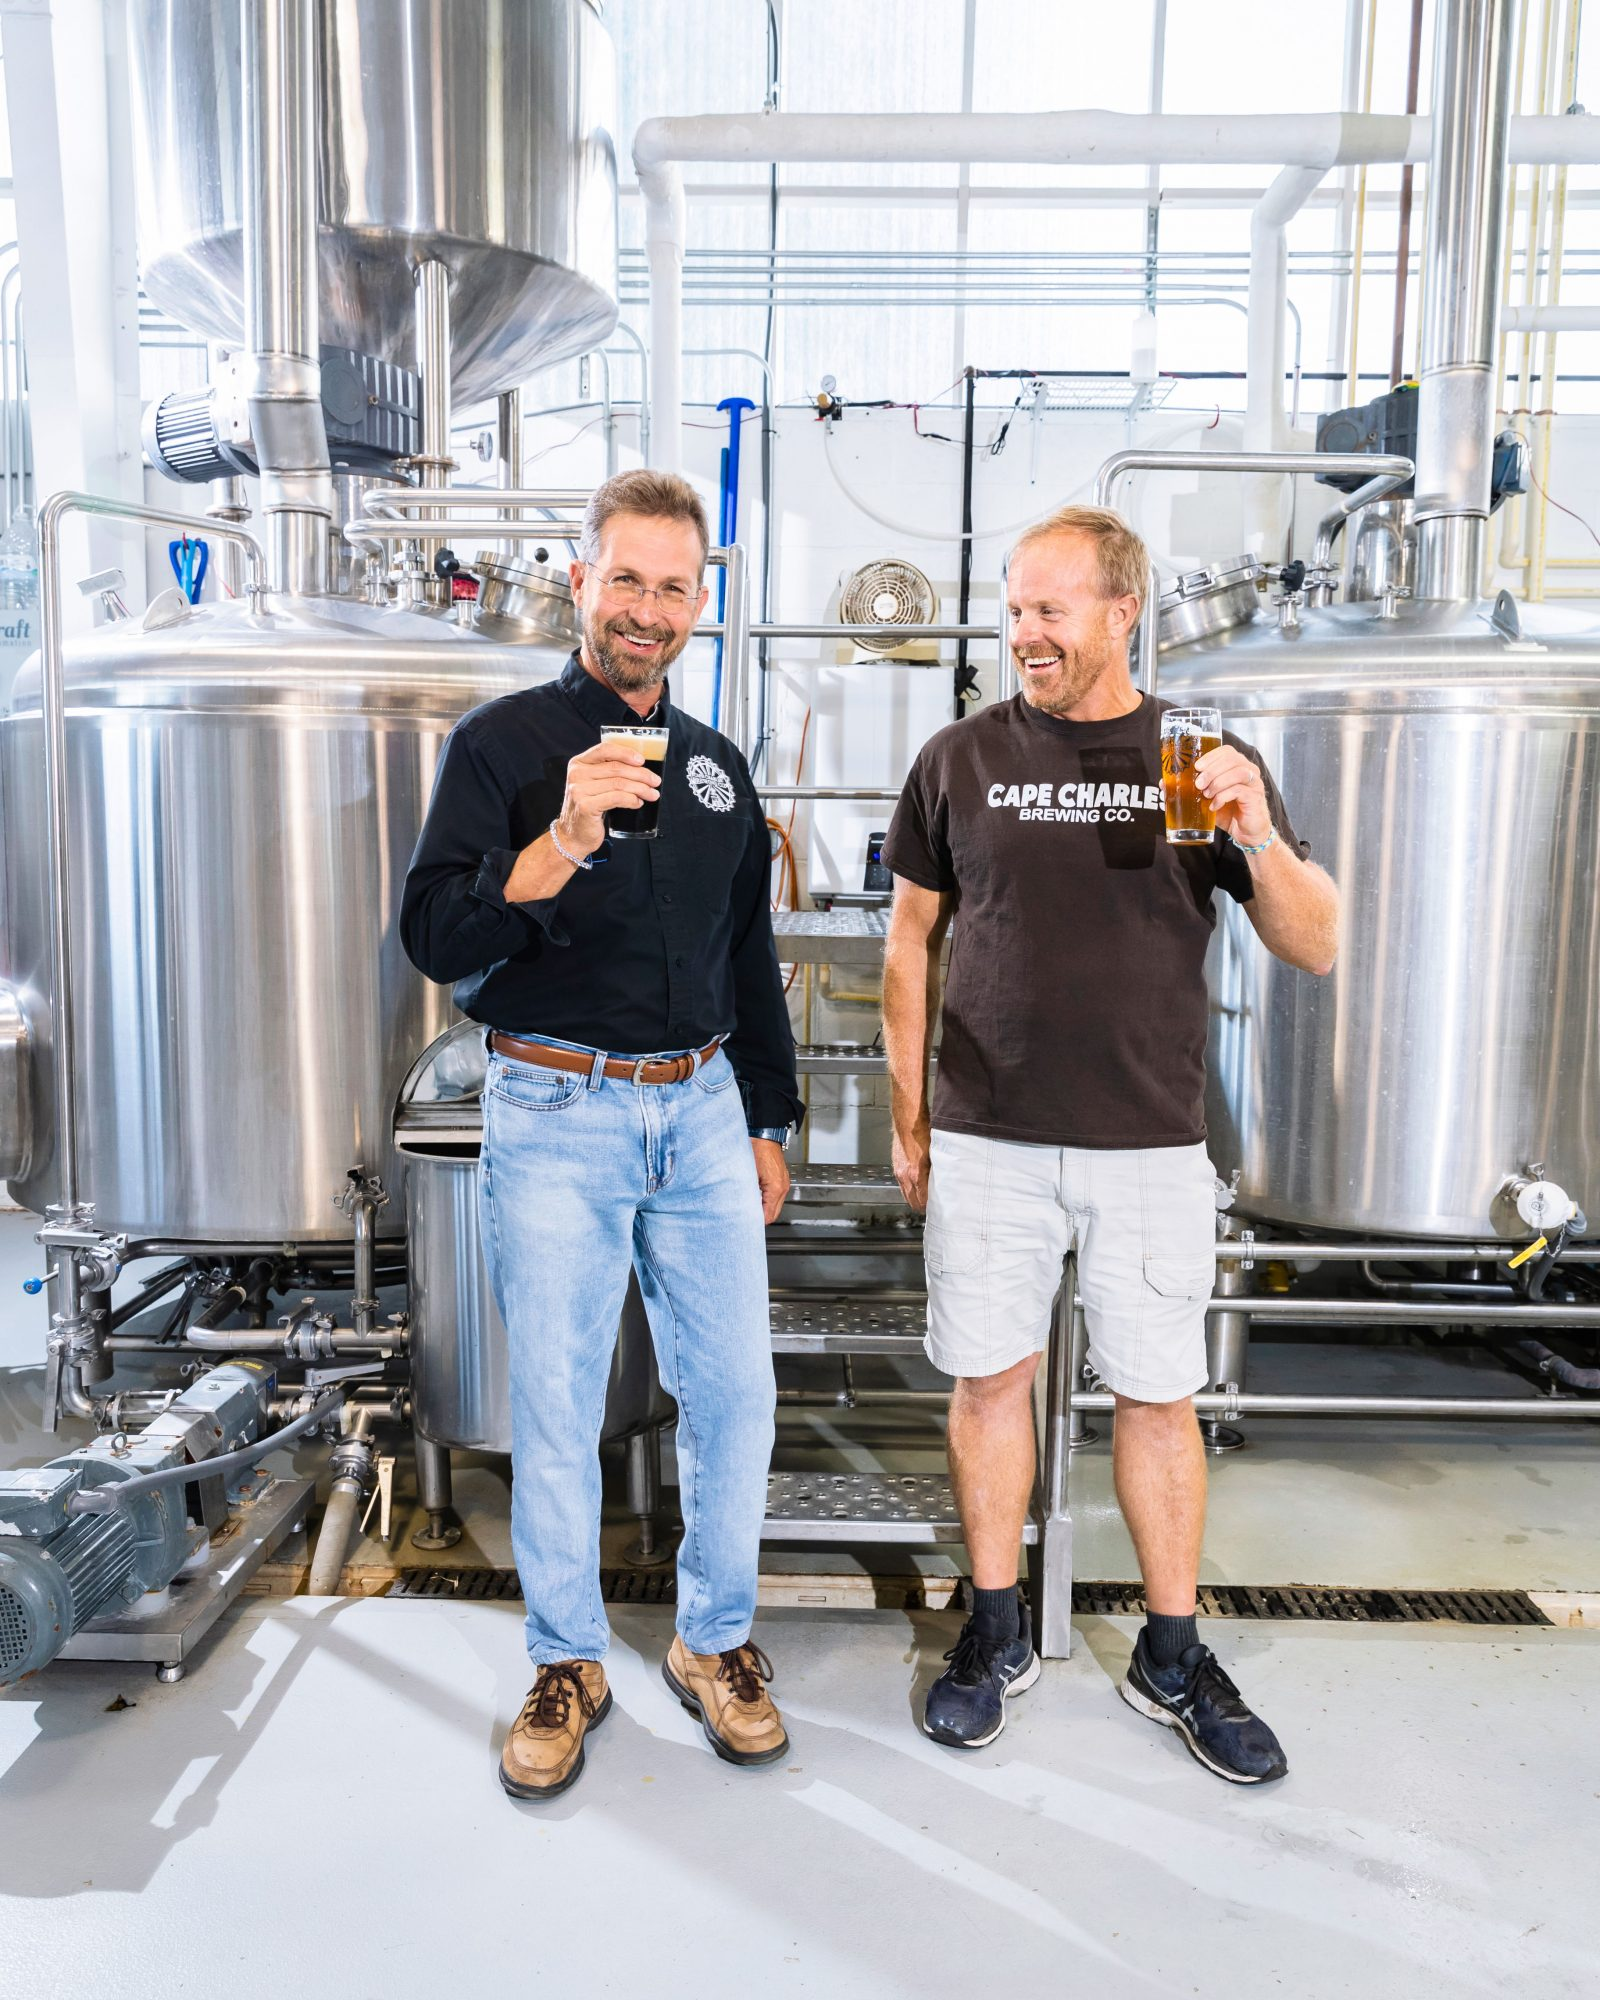 Mark and Chris Marshall of Cape Charles Brewing Company